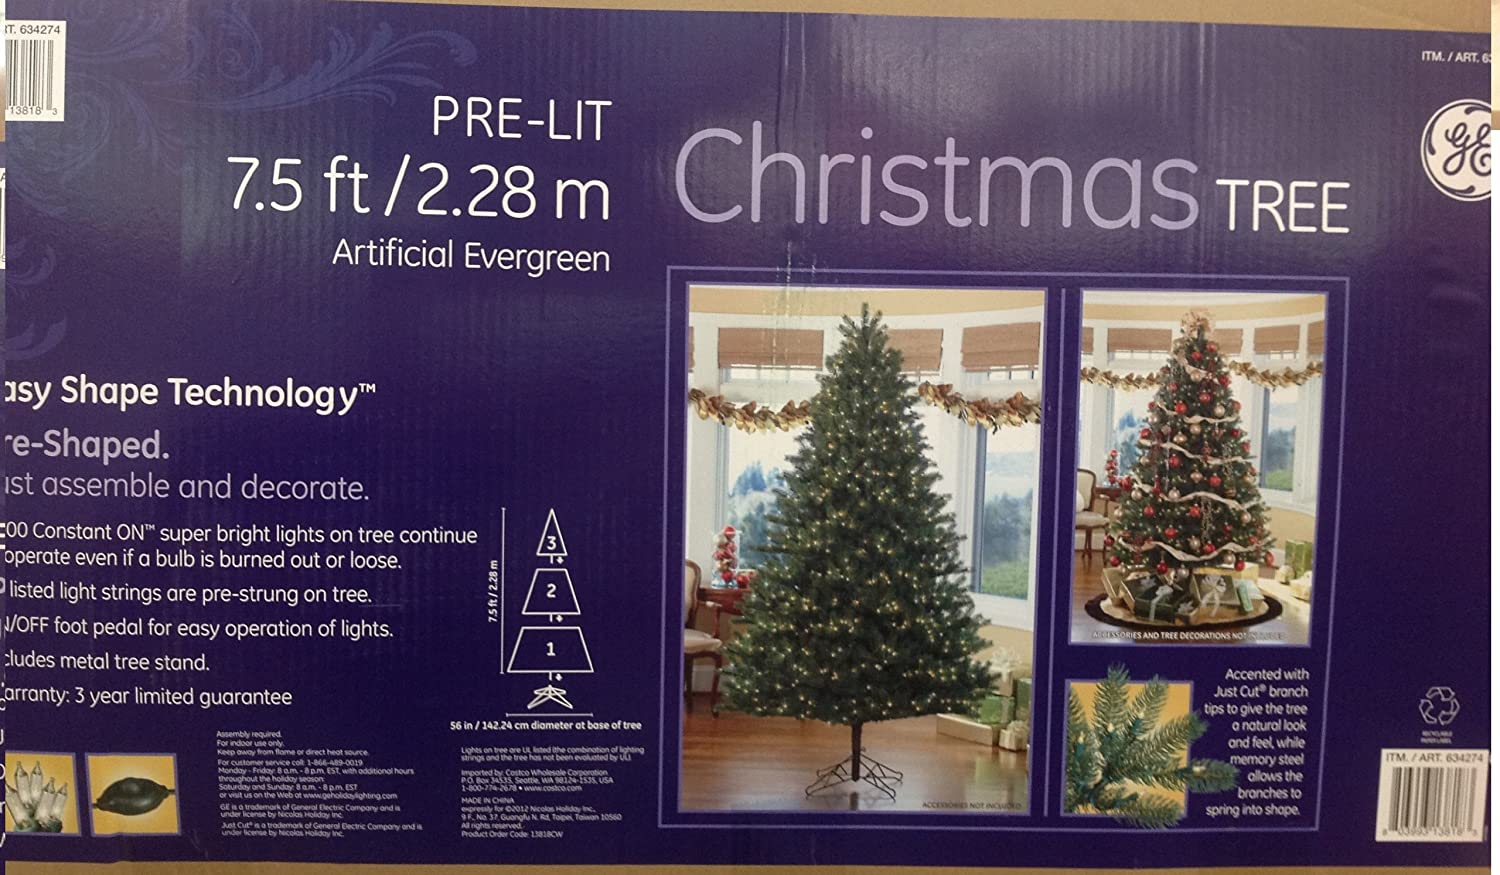 Amazon.com: Christmas Tree Pre Lit 7.5 Ft/2.28m Artifical ...